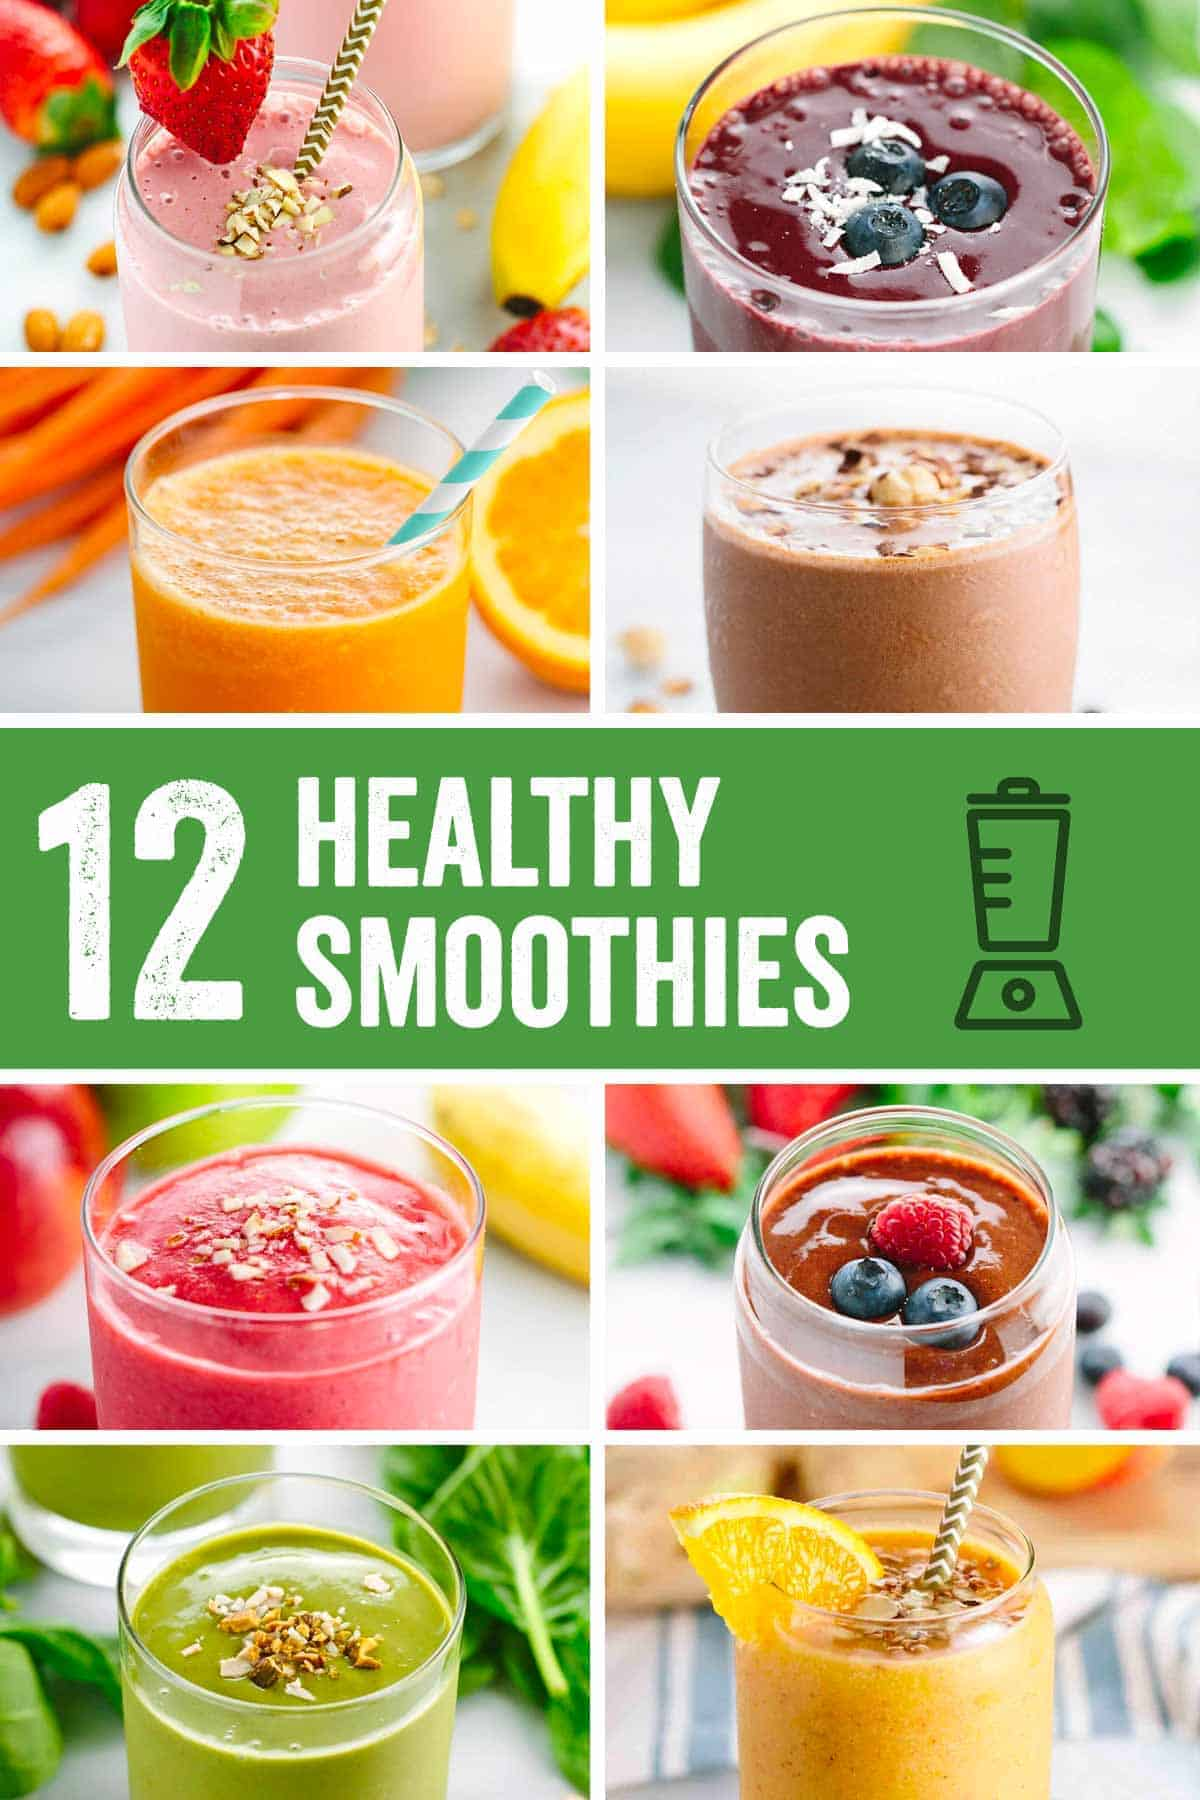 NutriBullet recipes: Superfood smoothies to give you an instant boost NutriBullet recipes: Superfood smoothies to give you an instant boost new pictures